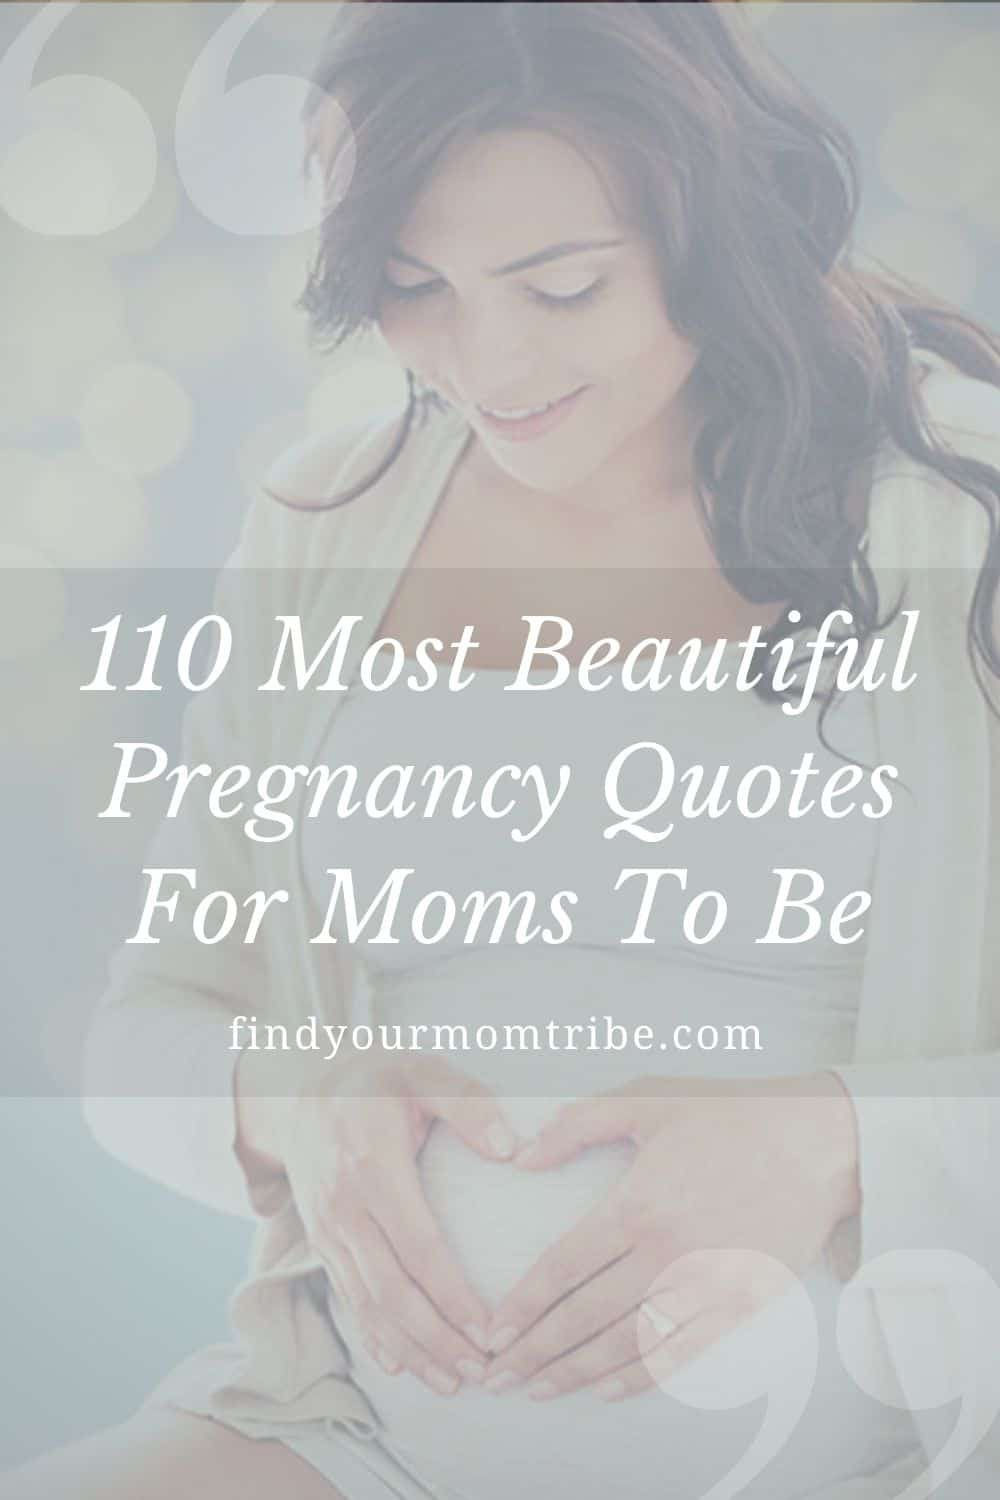 110 Most Beautiful Pregnancy Quotes For Moms To Be